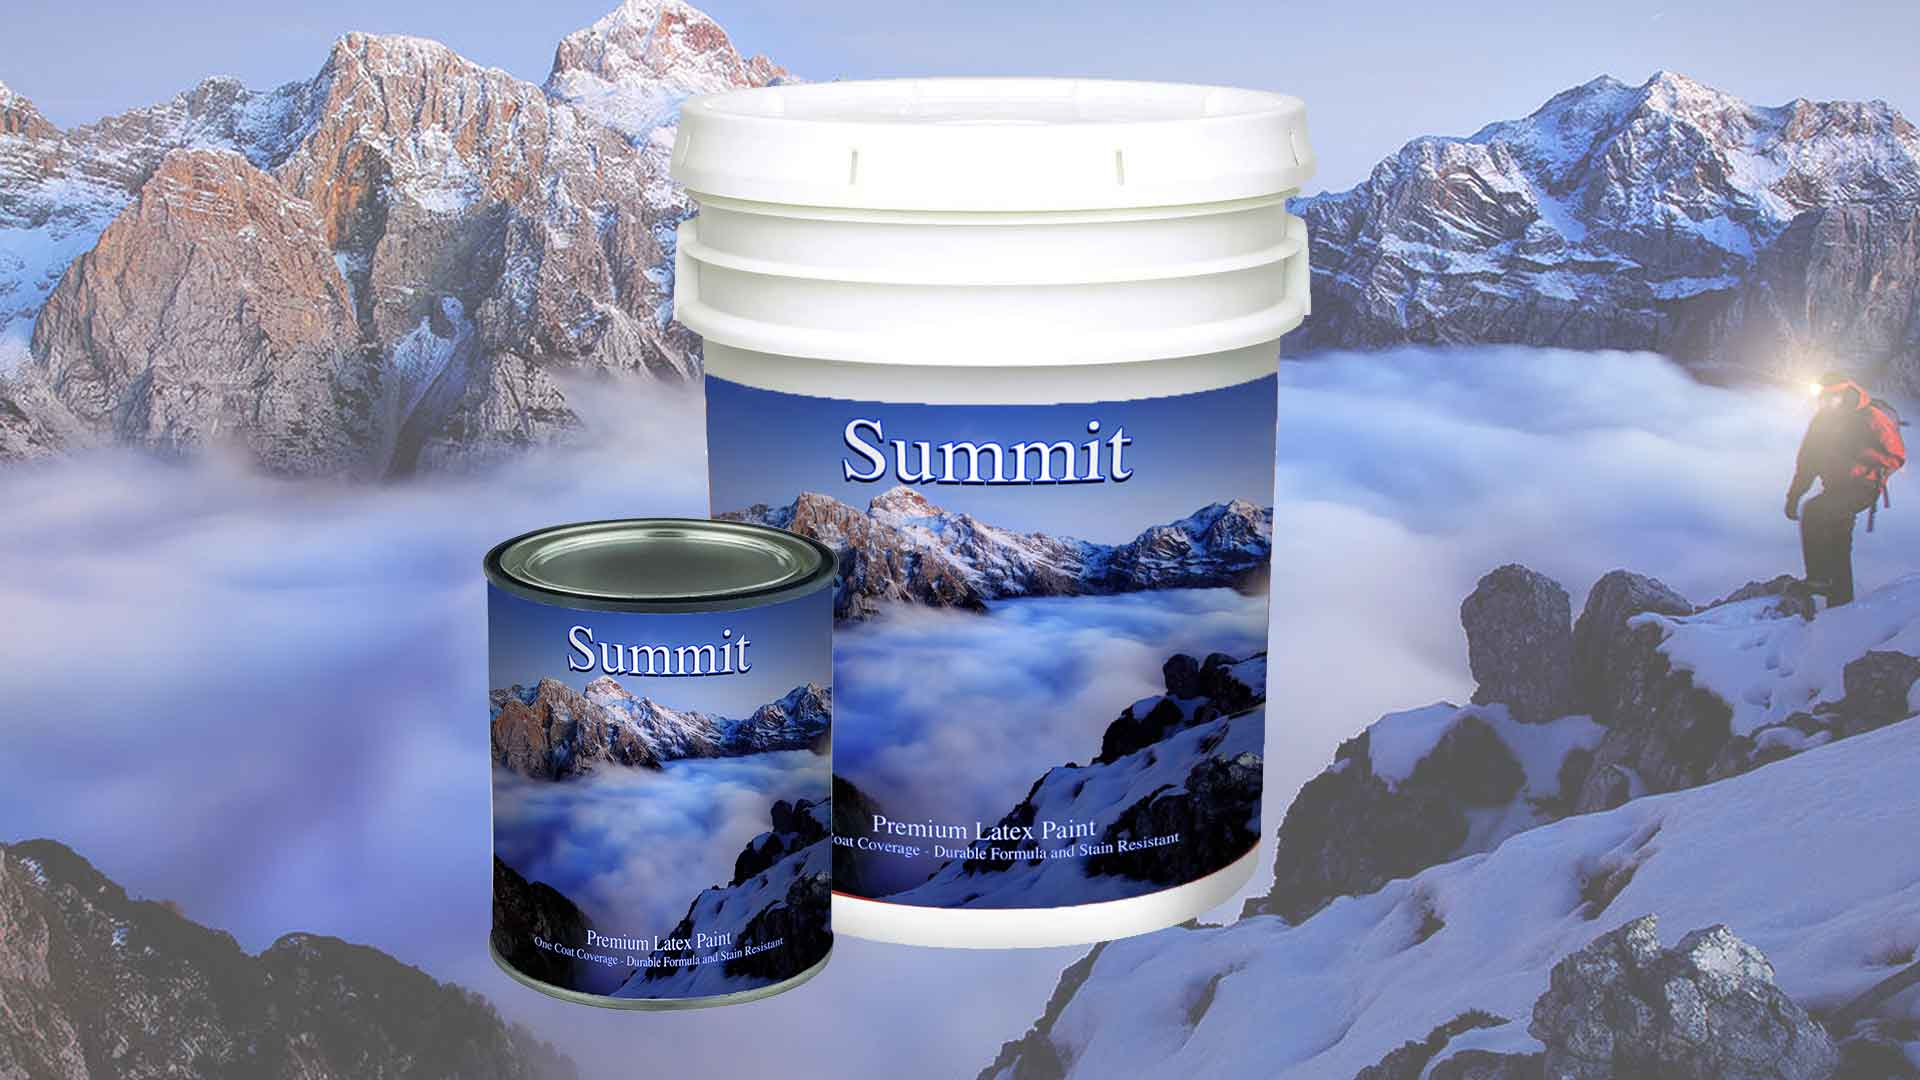 Good levelling good coverage good washability excellent hiding low - Manufactured In Compliance With The Highest Industry Standards In Acrylic Latex Paints Summit Offers High Stain Resistance Excellent Hide And Coverage